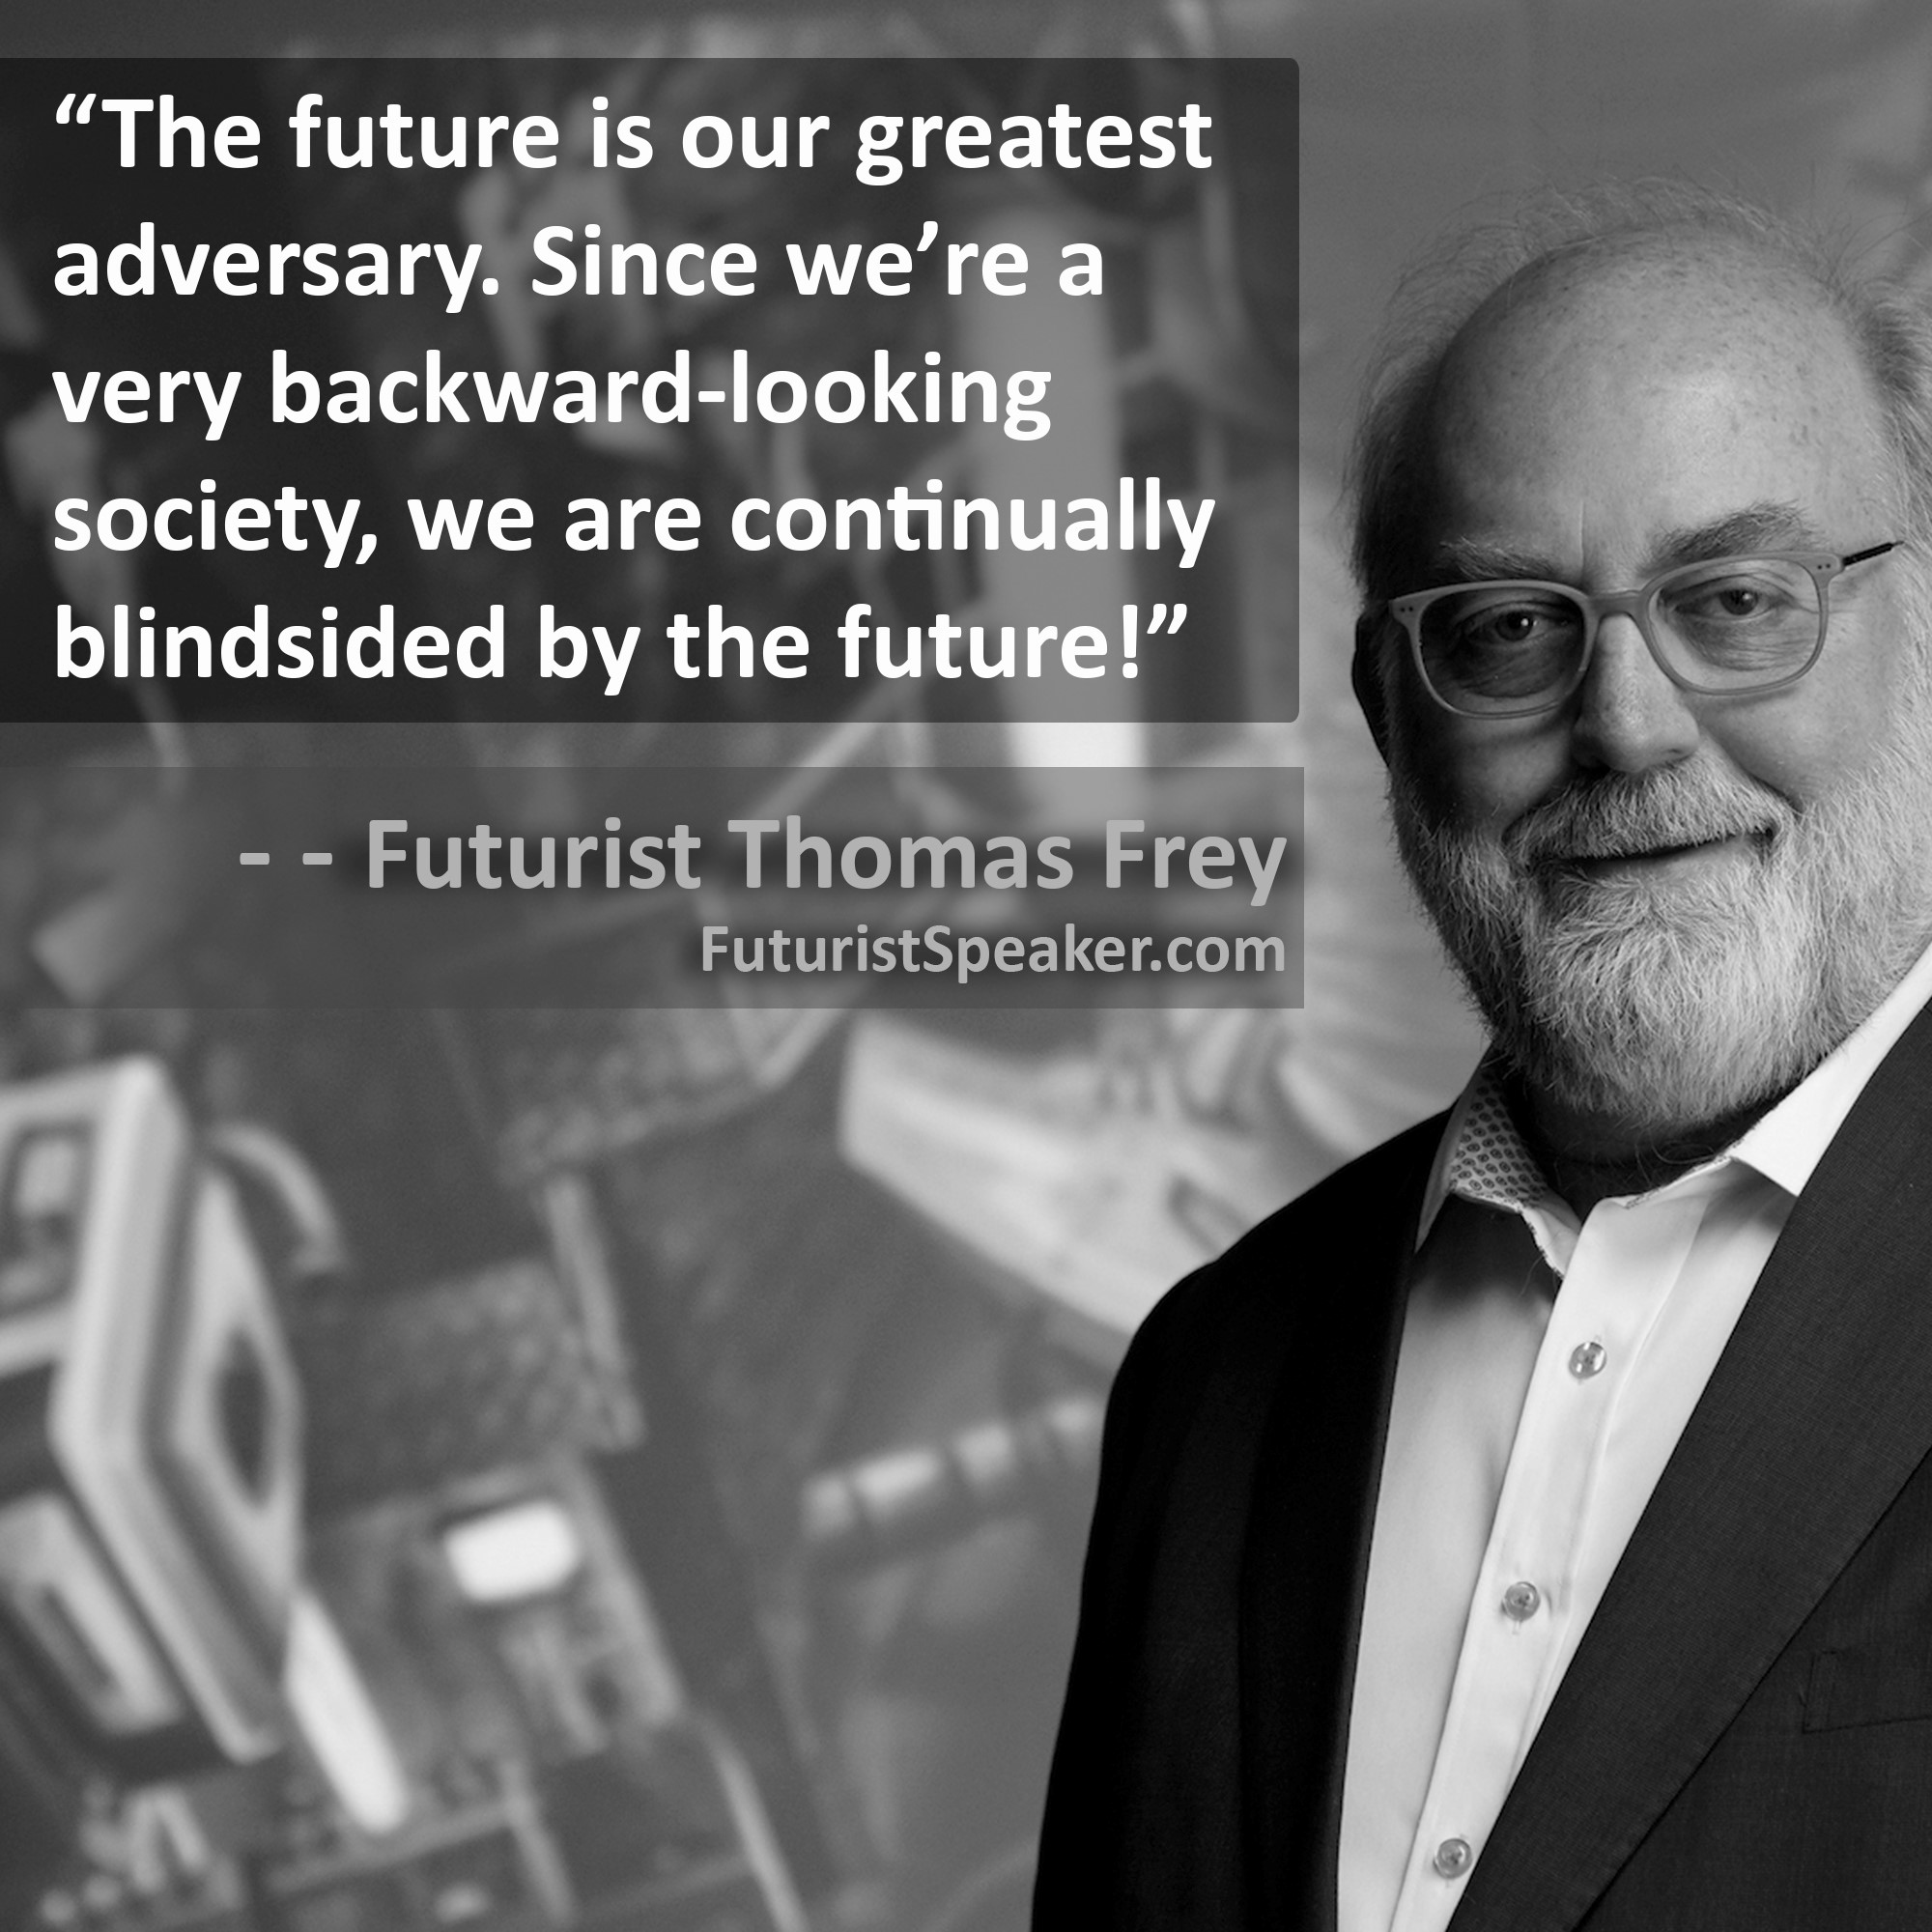 Thomas Frey Futurist Speaker Famous Quote: The future is our greatest adversary. Since we are a very backward-looking society, we are continually blindsided by the future.